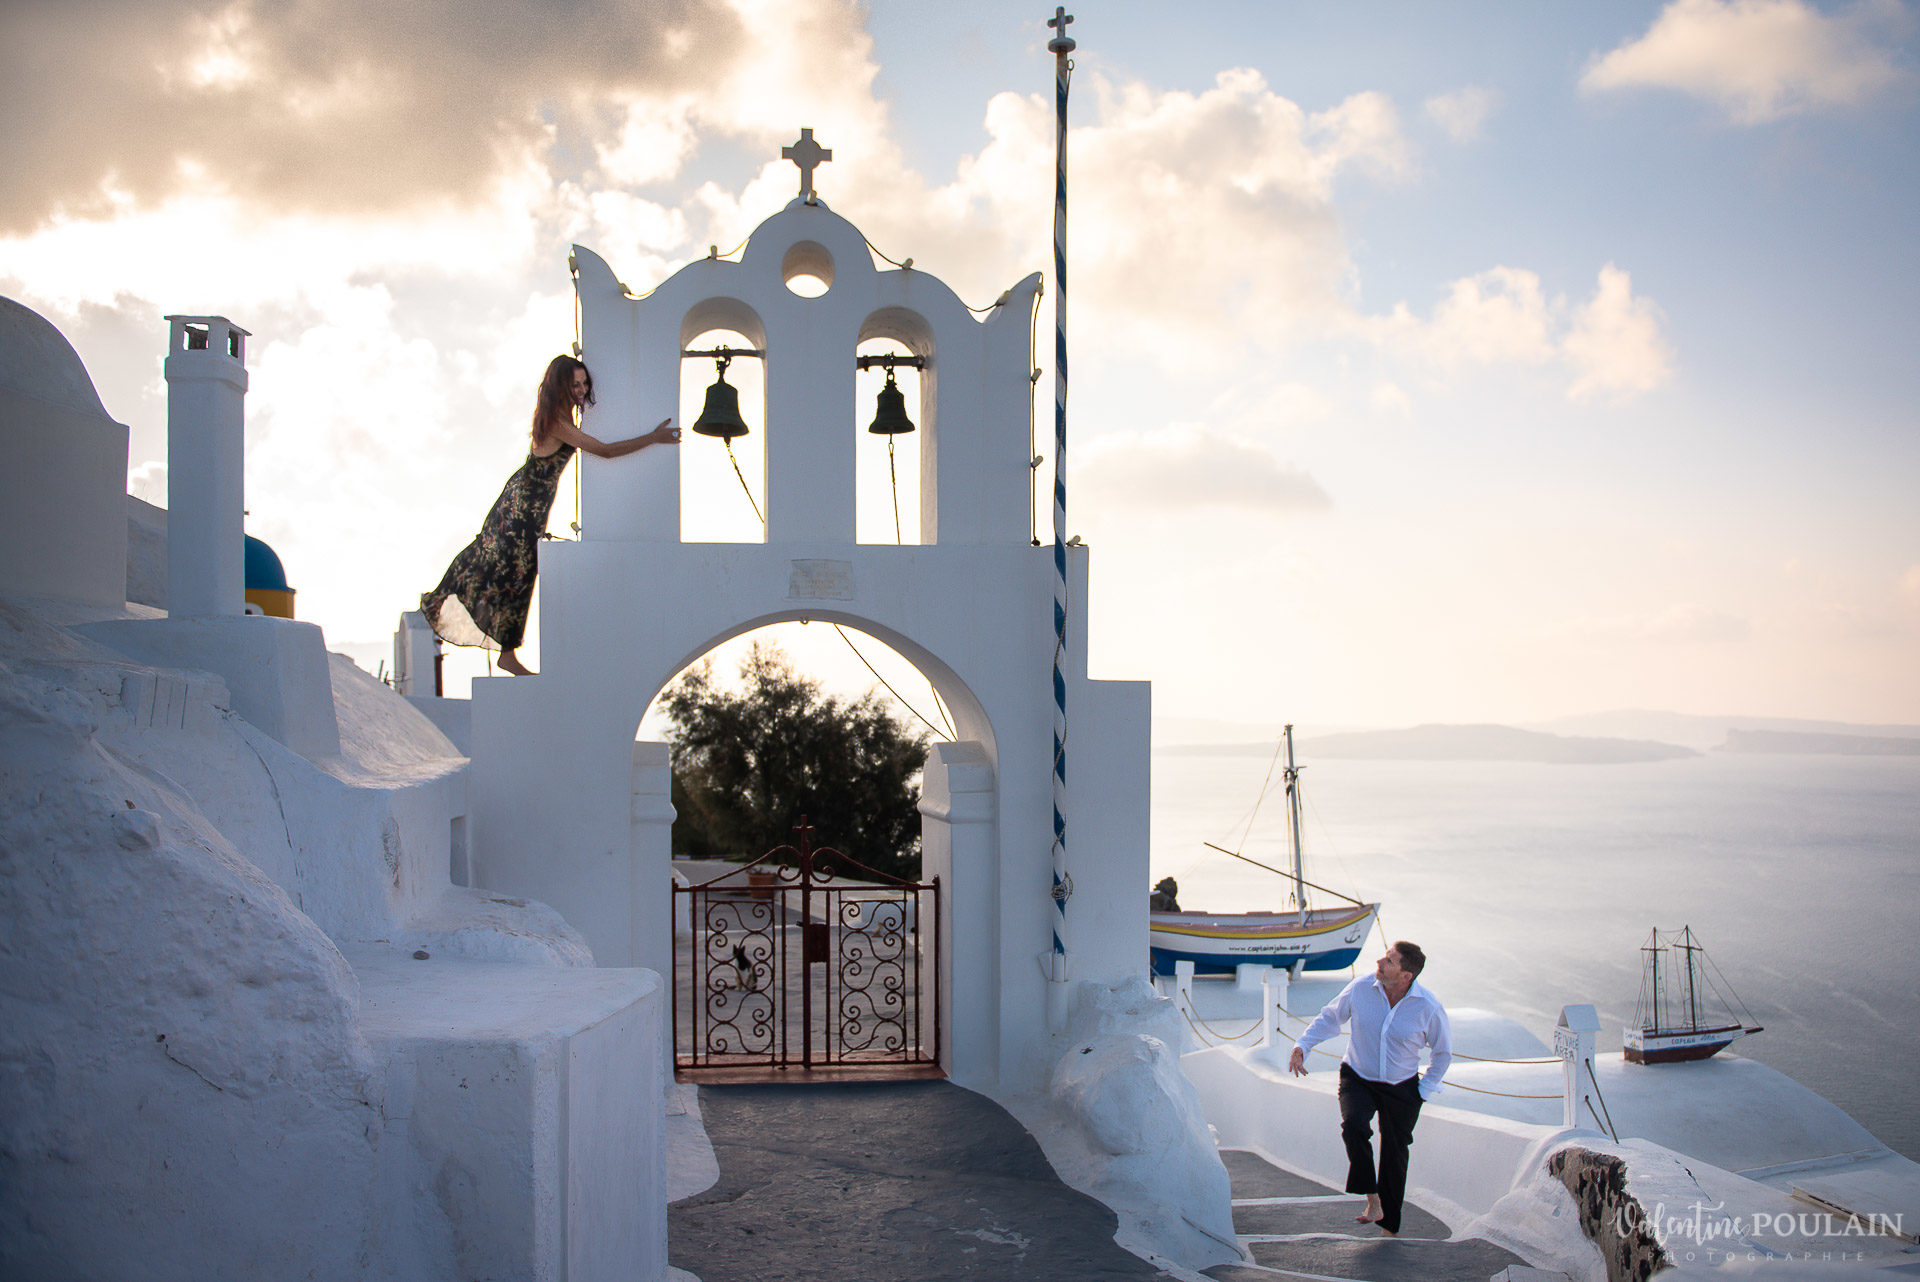 Shooting photo day after Santorin - Valentine Poulain monter